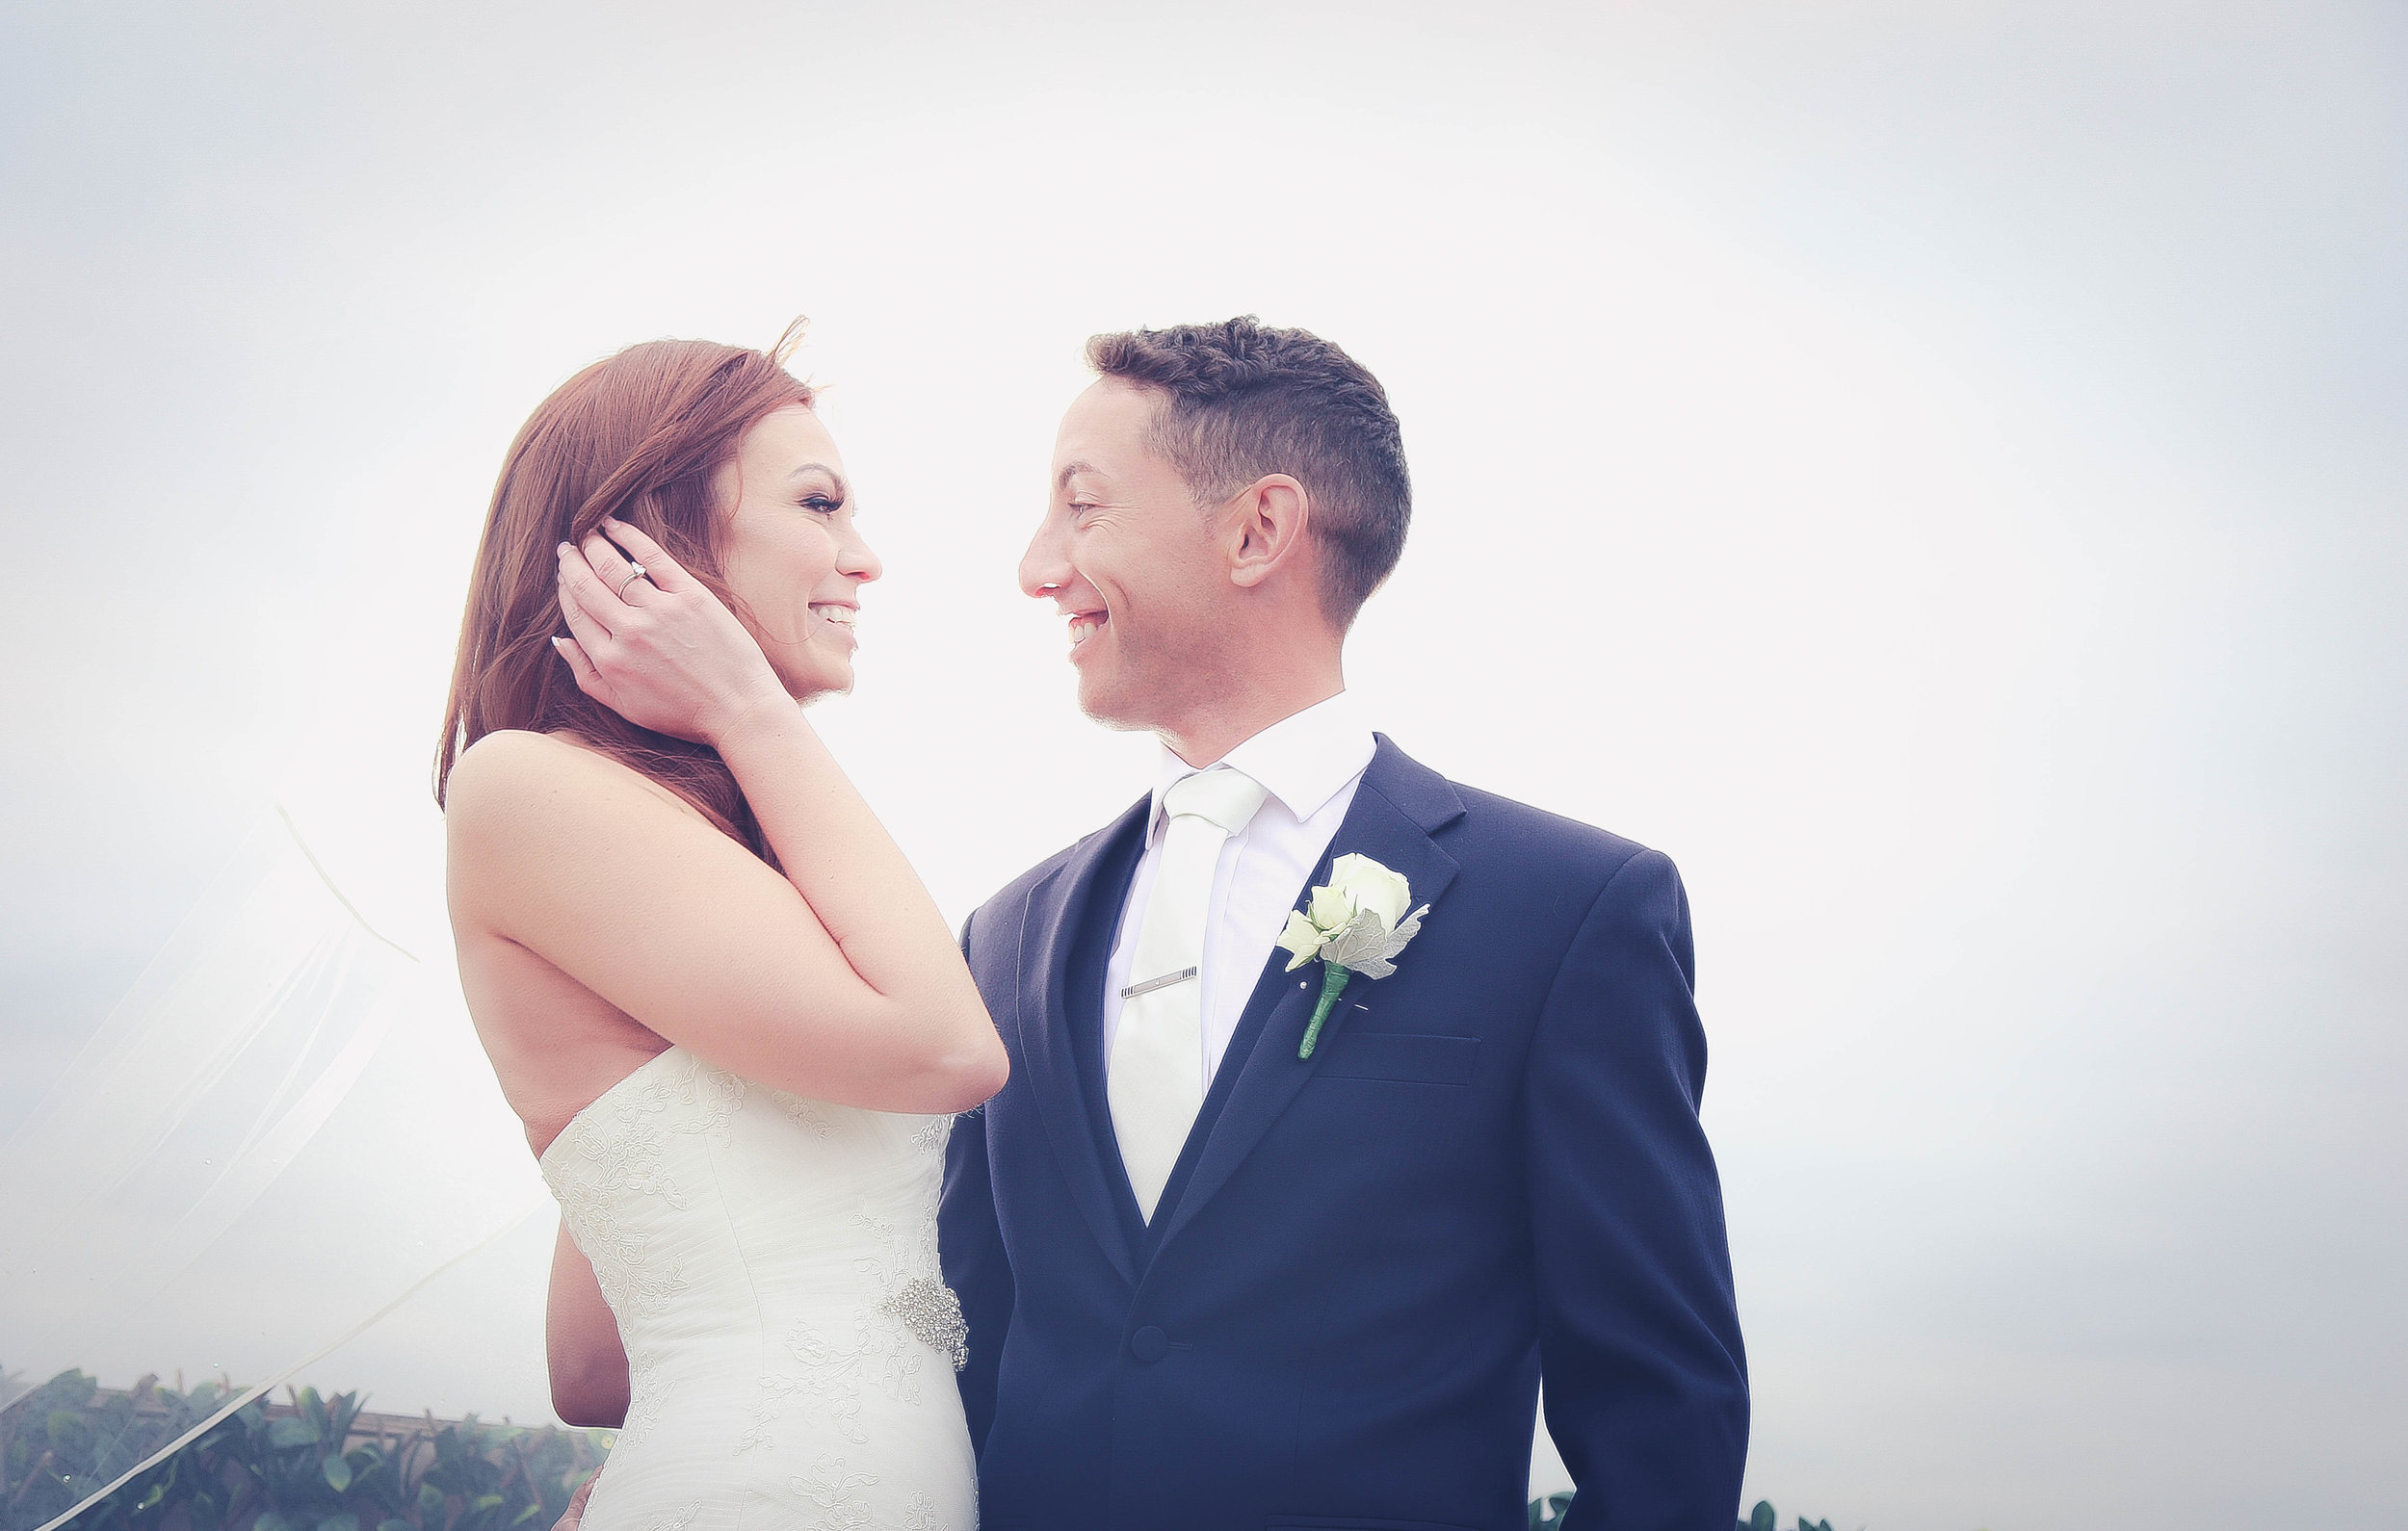 Weddings at the shankly hotel liverpool-101.jpg